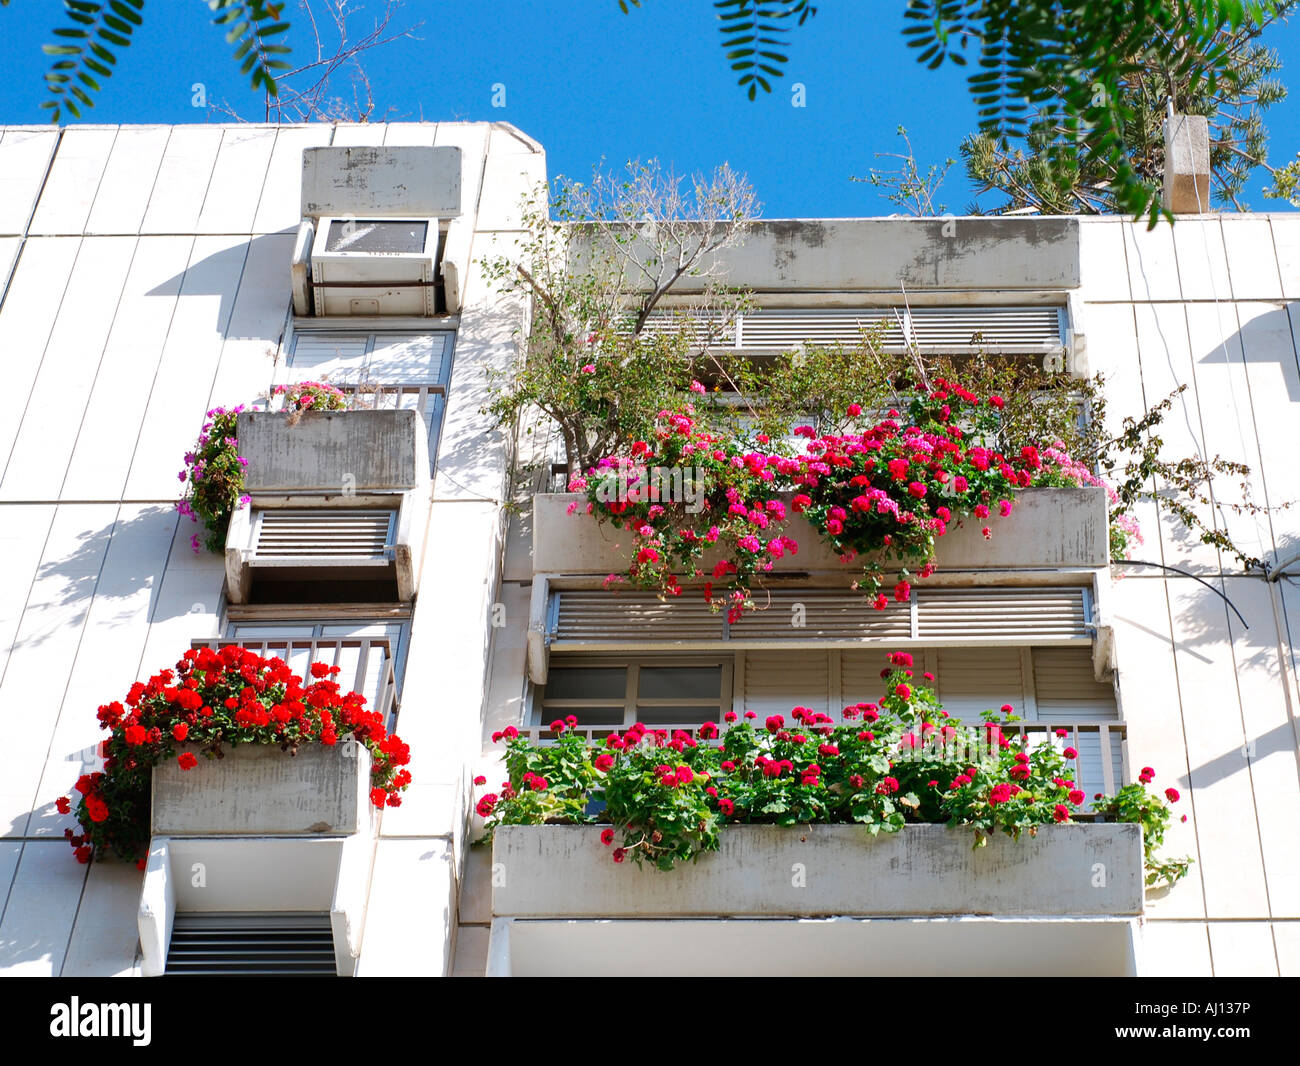 Israel Tel Aviv Modern Apartment Building With Pot Plants And